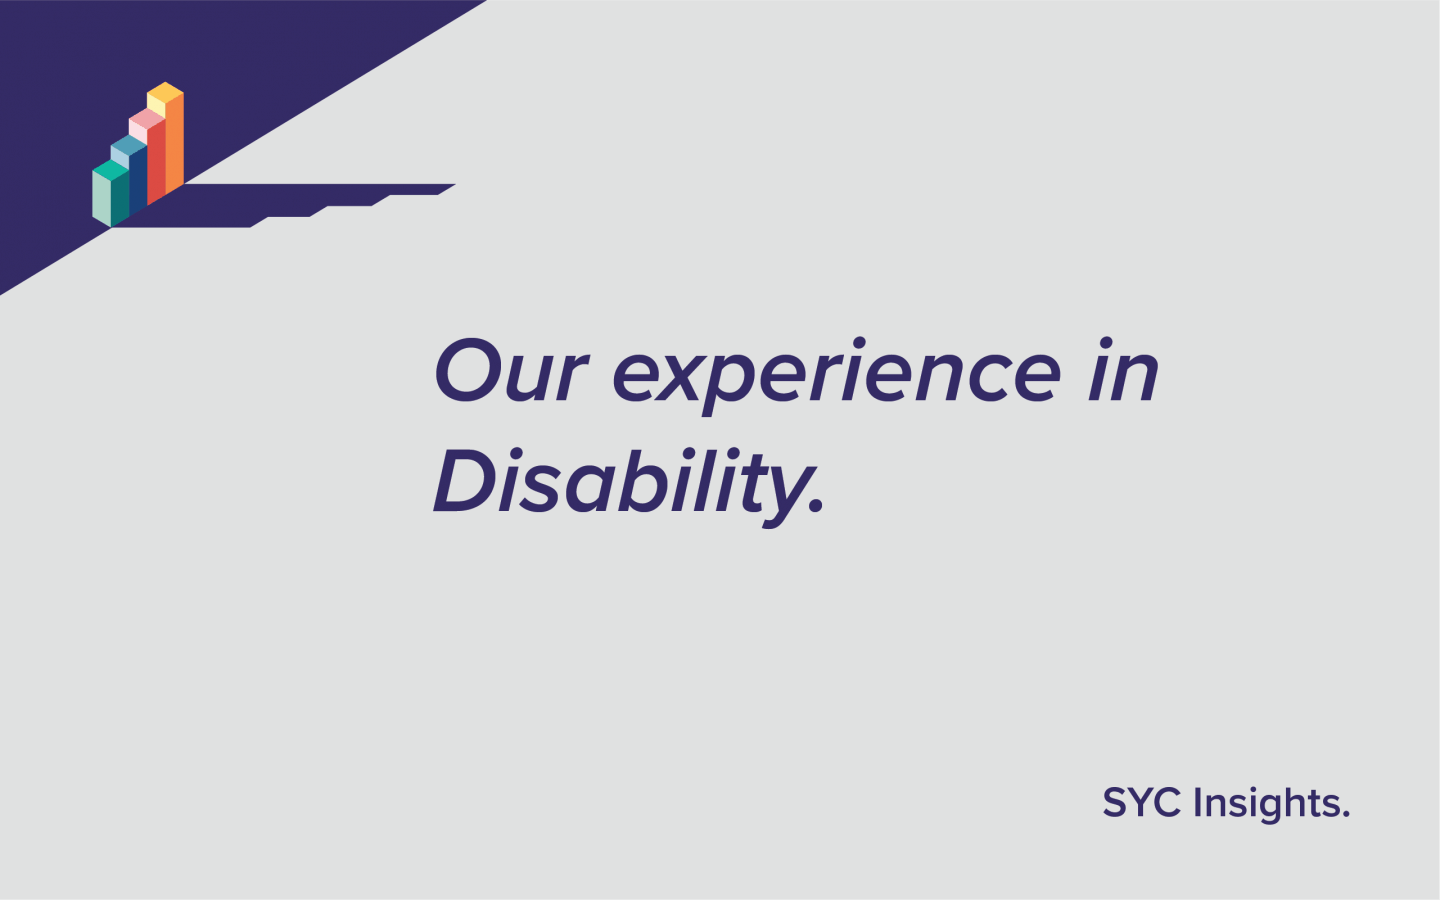 Our Experience in Disability